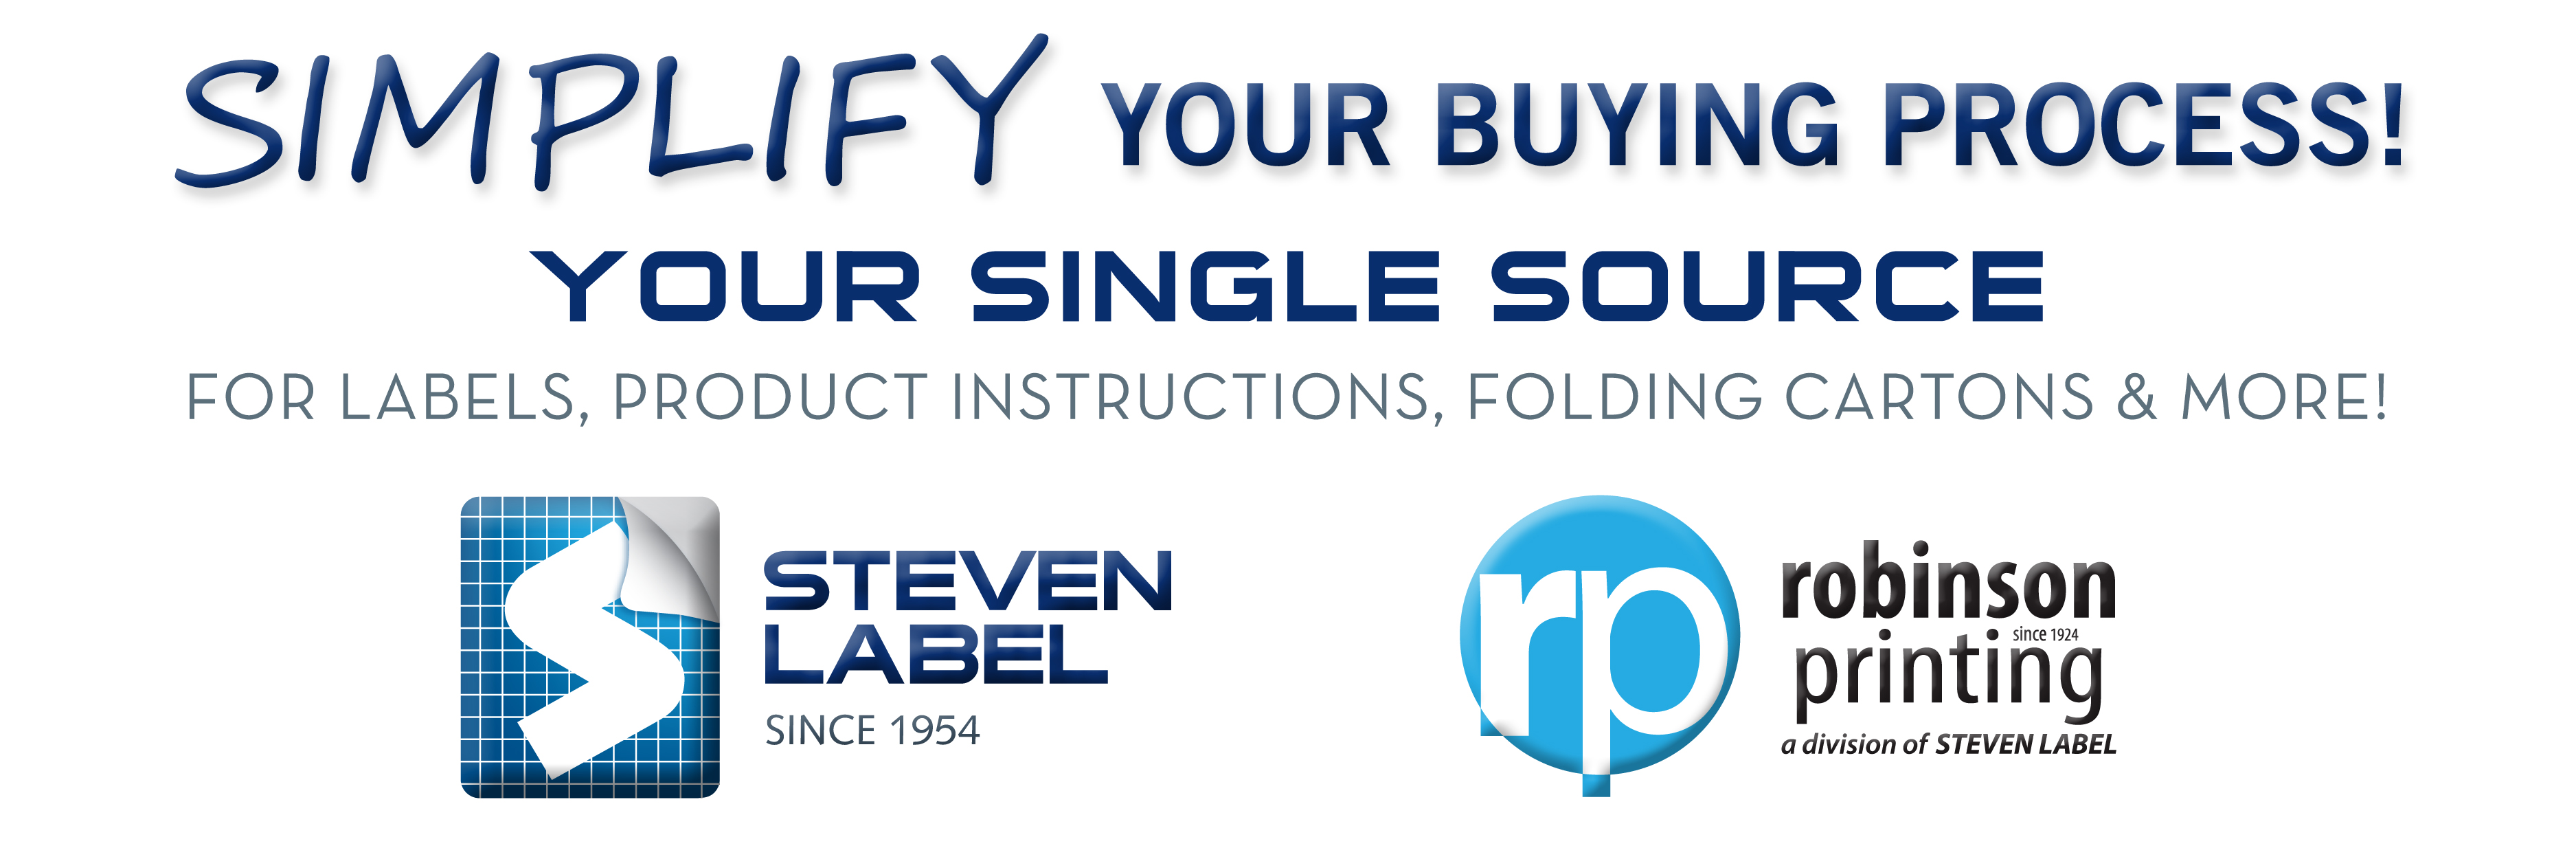 Steven Label - Build a Lasting Impression